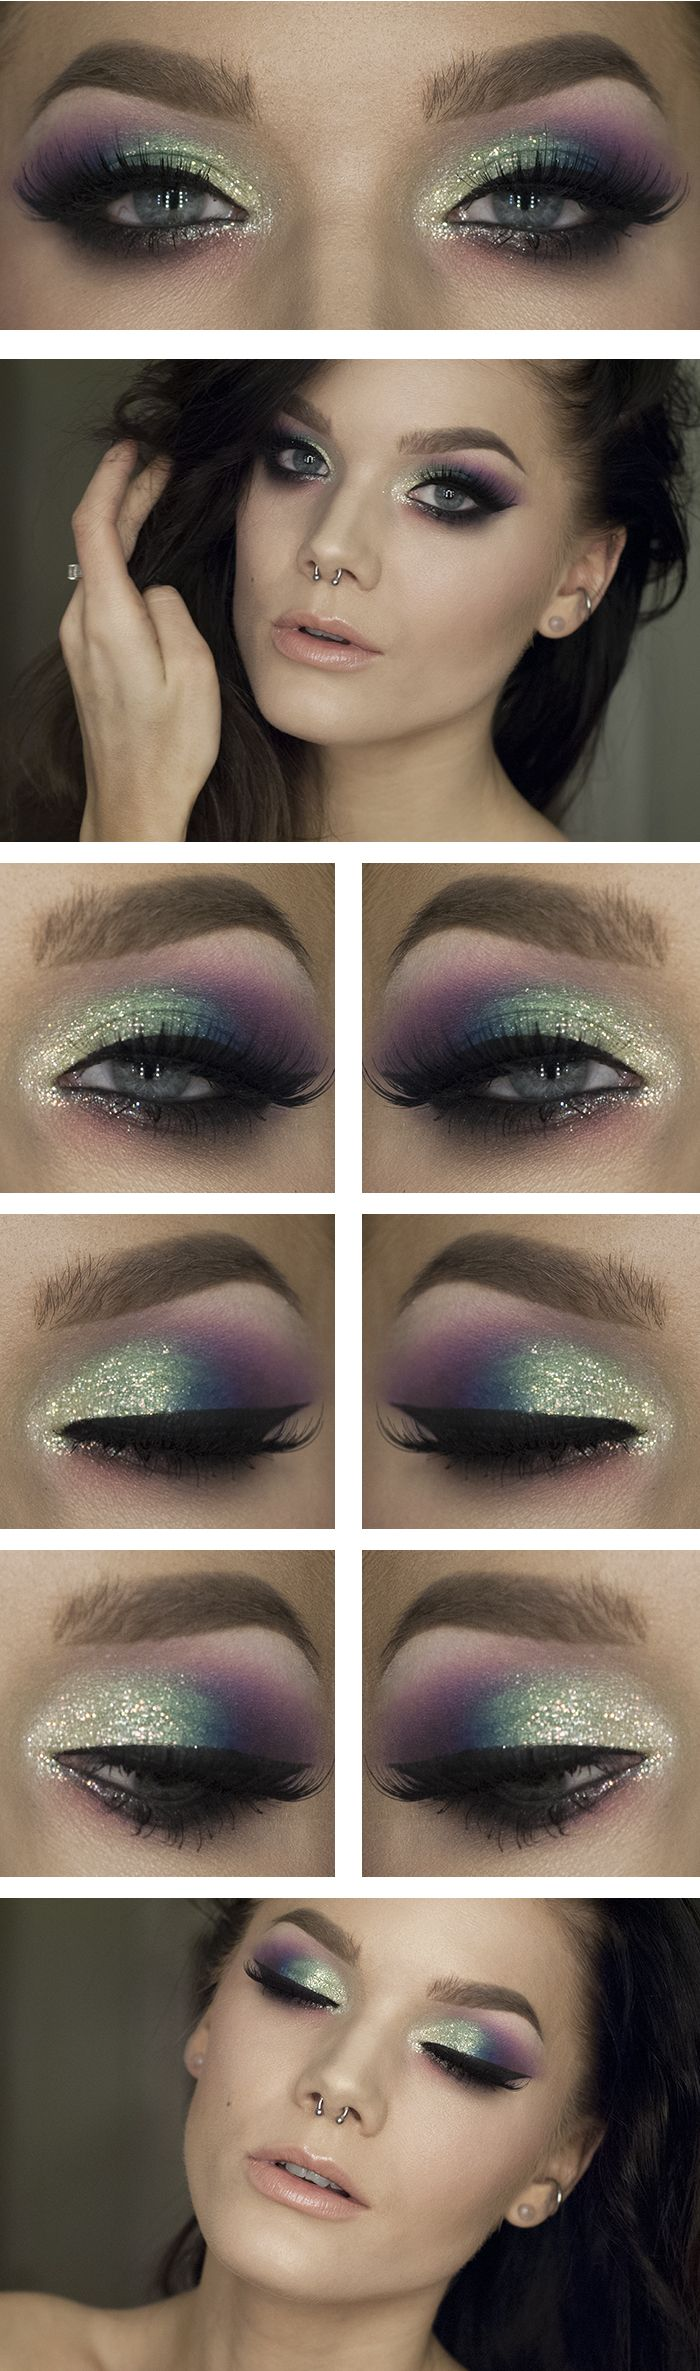 Halloween mermaid makeup #lindahallberg